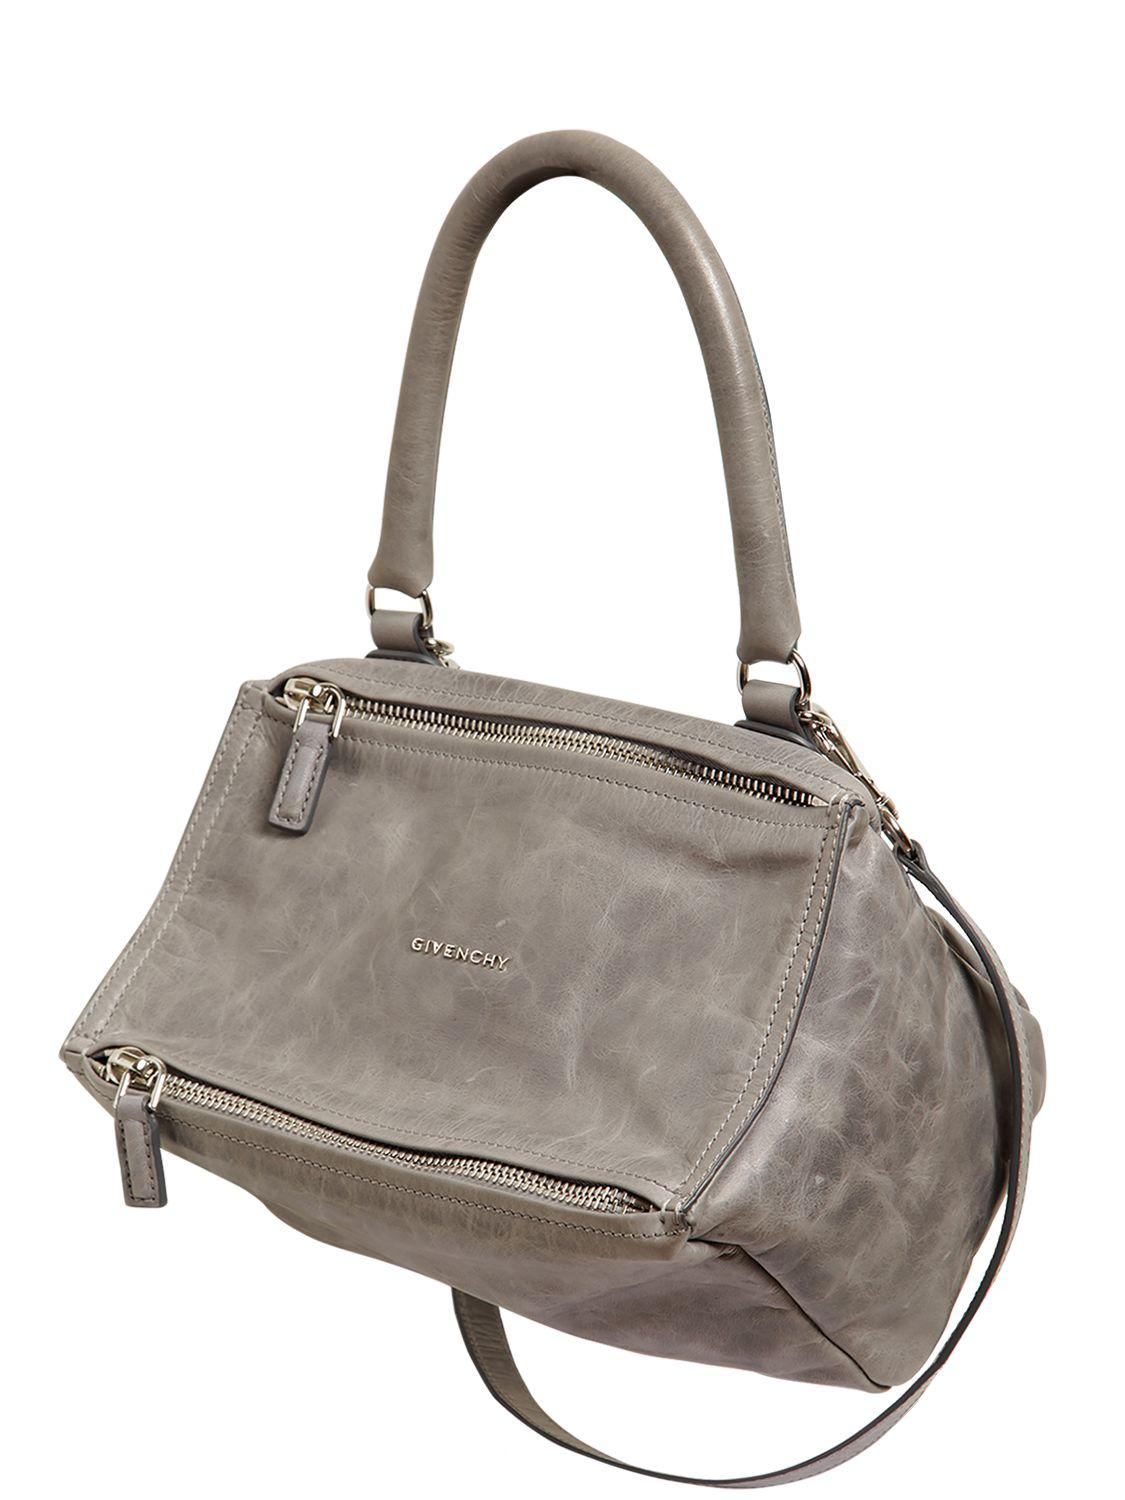 Givenchy - Gray Small Pandora Washed Leather Bag - Lyst. View fullscreen 11398aa4eae04